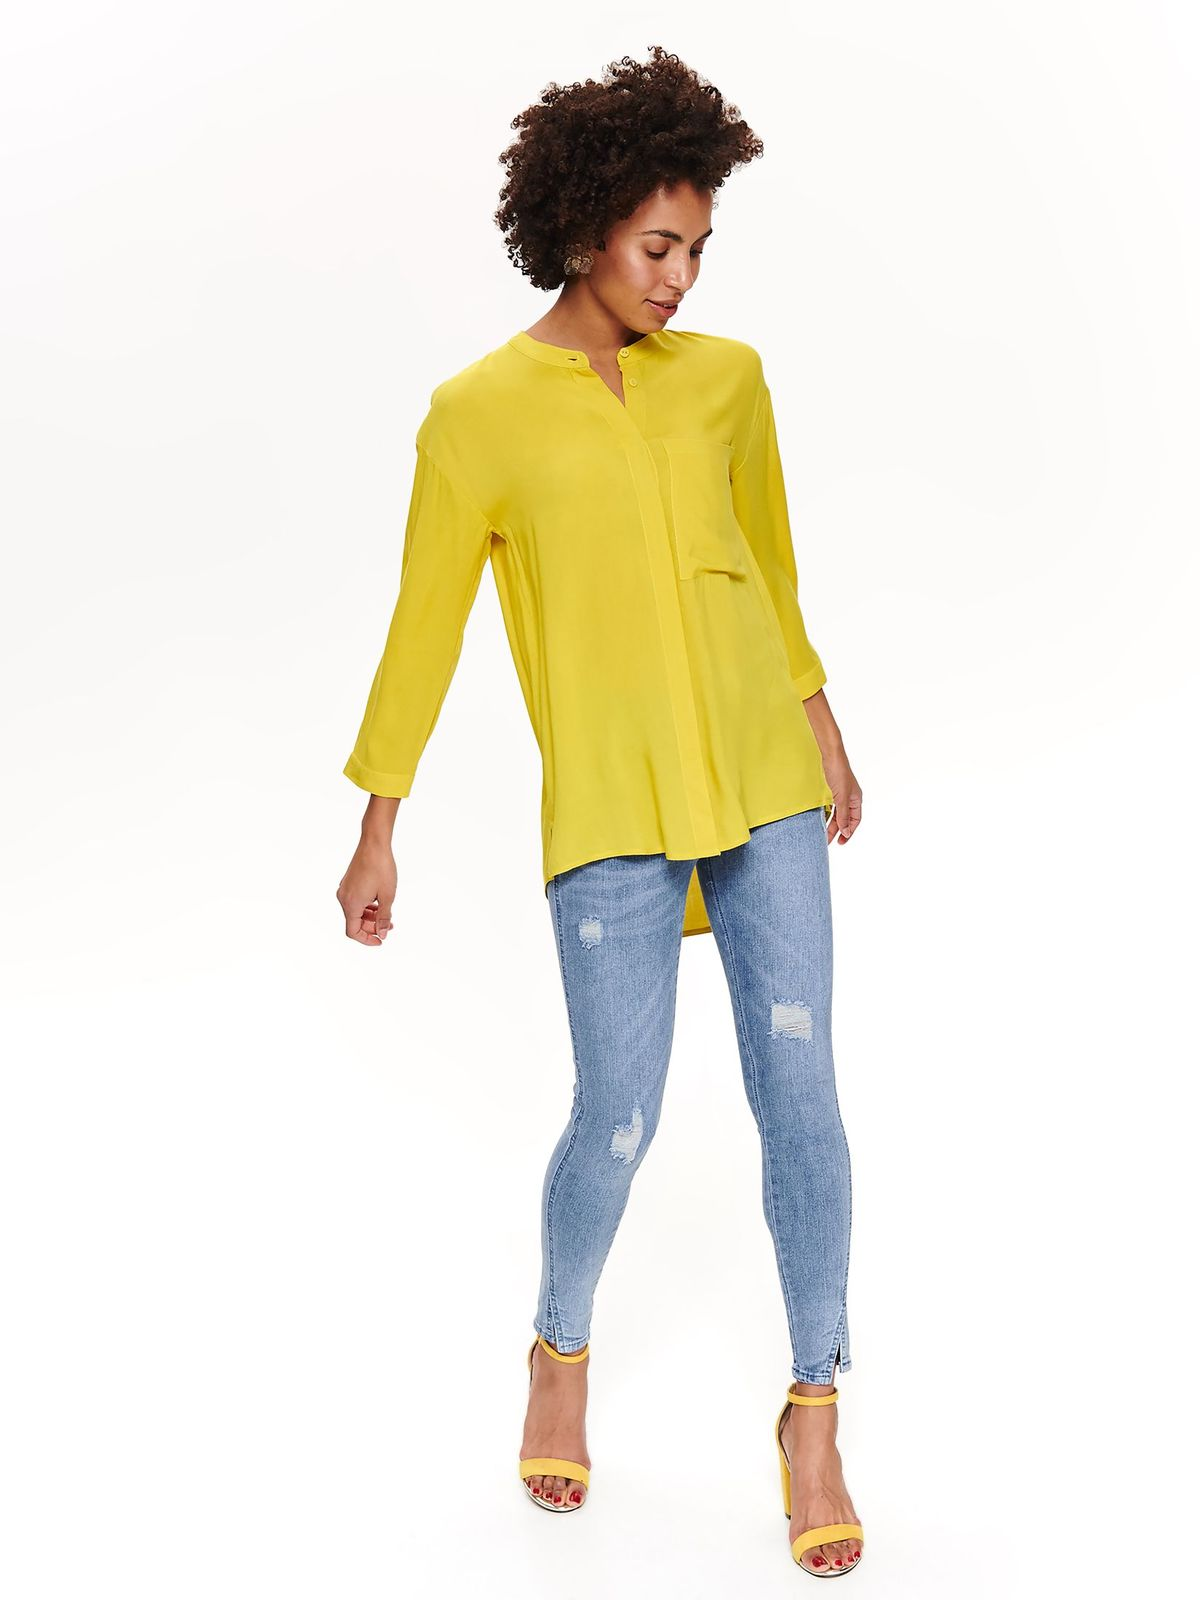 Top Secret yellow women`s shirt casual asymmetrical flared airy fabric long sleeved